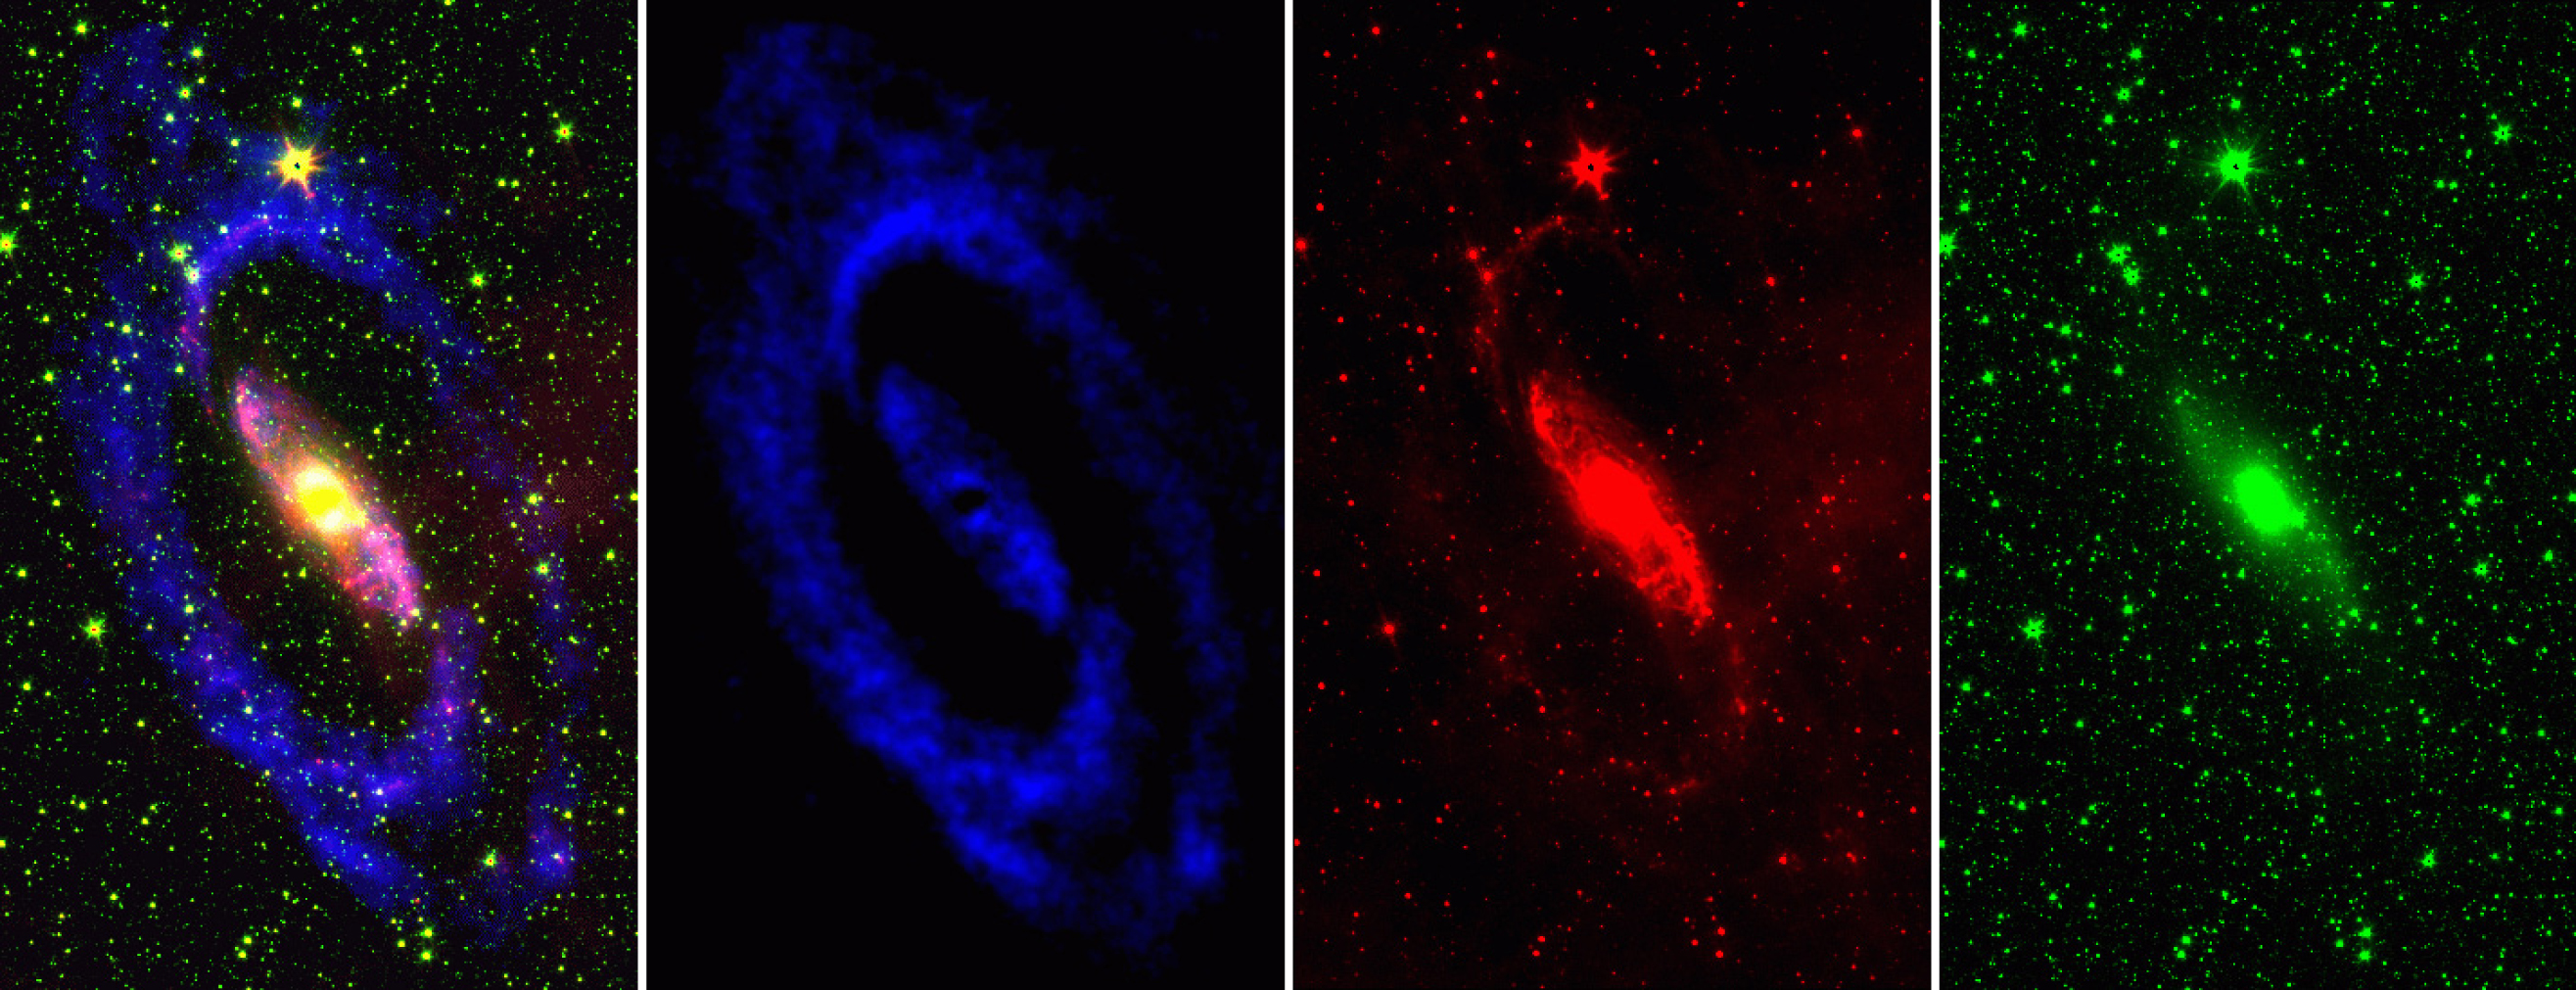 Four images of a spiral galaxy - bright areas on a black background. On the far left is a combined image with a yellow and pink centre, blue spiral arms, surrounded by numerous green dots; to the right of this is a blue swirl; to the right of this is a red swirl; and to the far right is a large, bright green dot in the centre with numerous green dots around it.